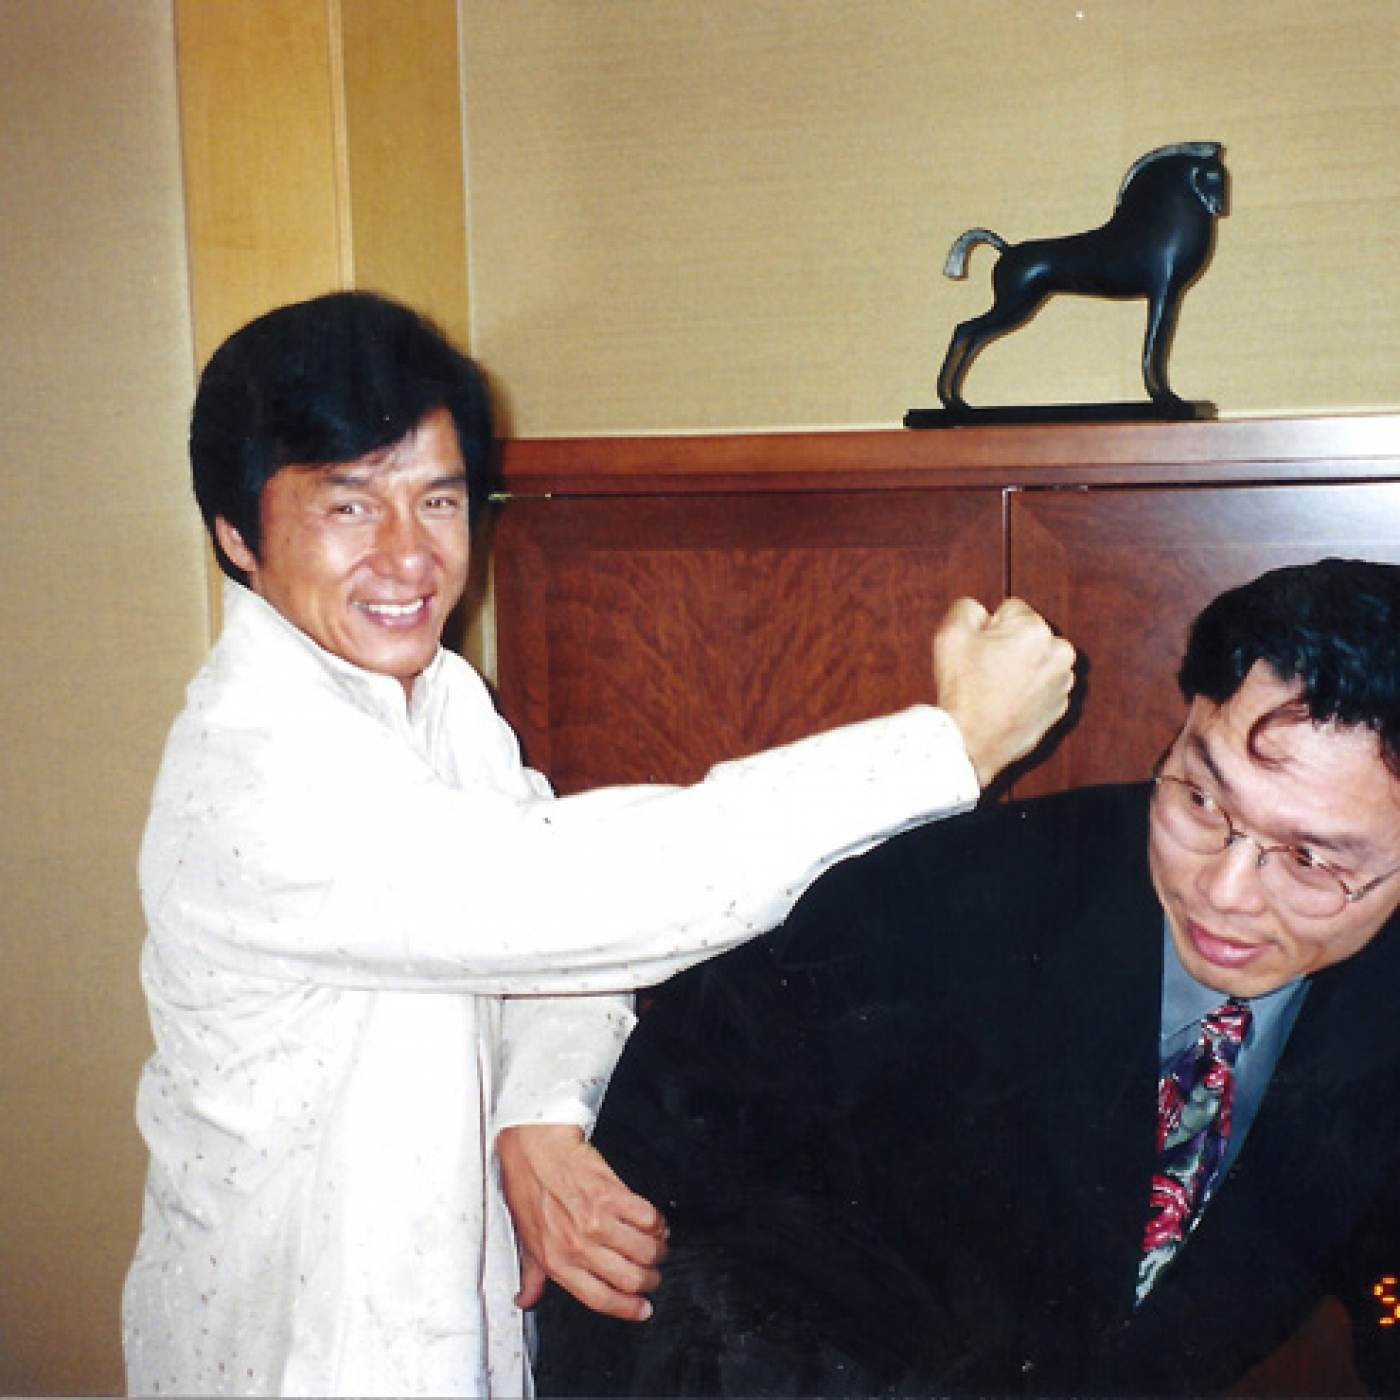 30 September 2019 Posted. Jackie Chan and MOCA Co-Founder Jack Tchen, in 2000 during the time of MOCA Legacy Award Gala, Museum of Chinese in America (MOCA) Institutional Archives 成龙与MOCA创始人陈国维在2000年MOCA年度传承颁奖晚宴活动期间,美国华人博物馆(MOCA)机构档案